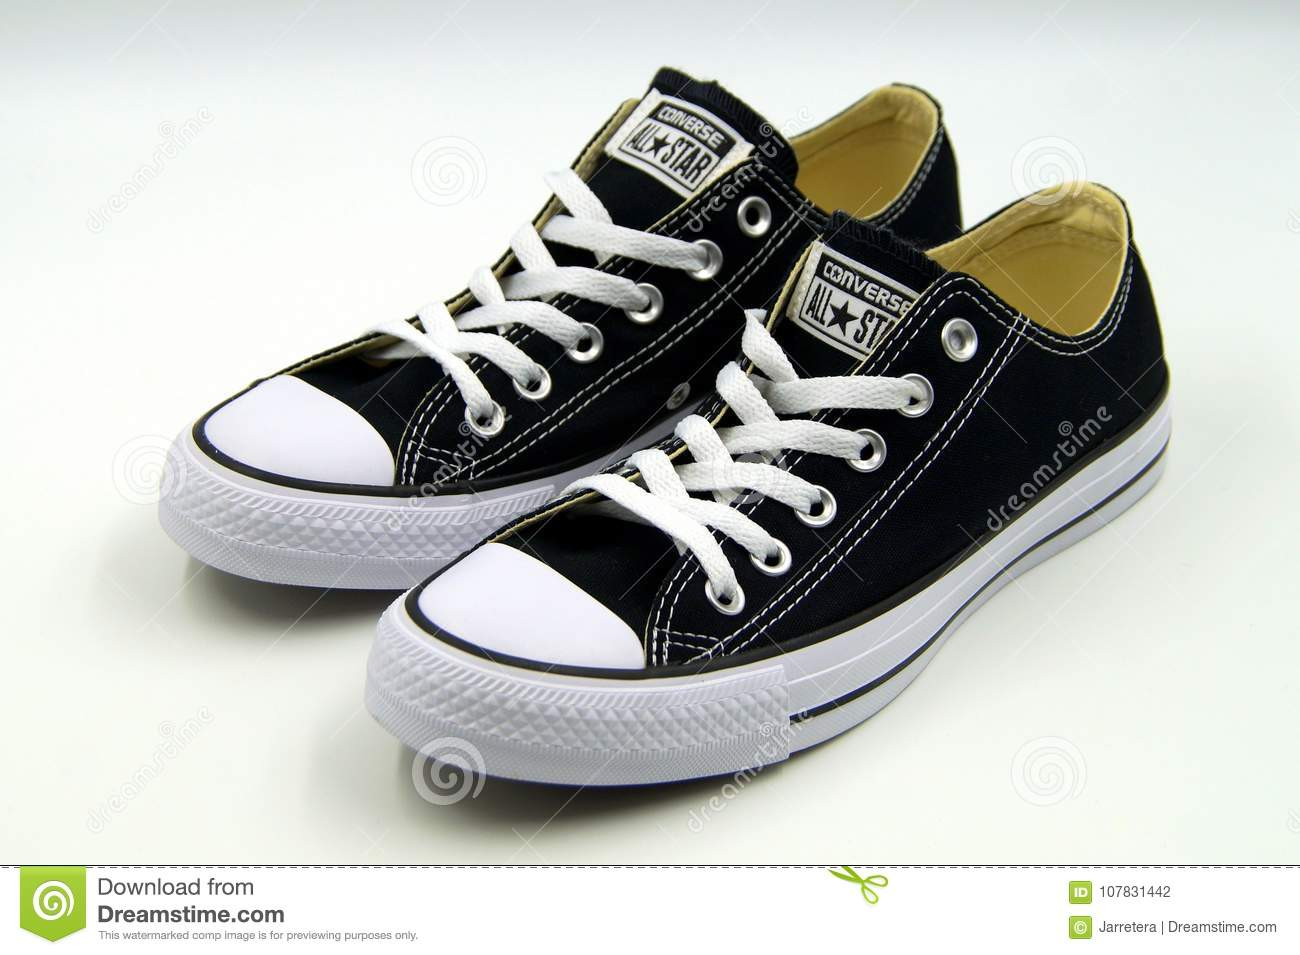 converse all star basse nero